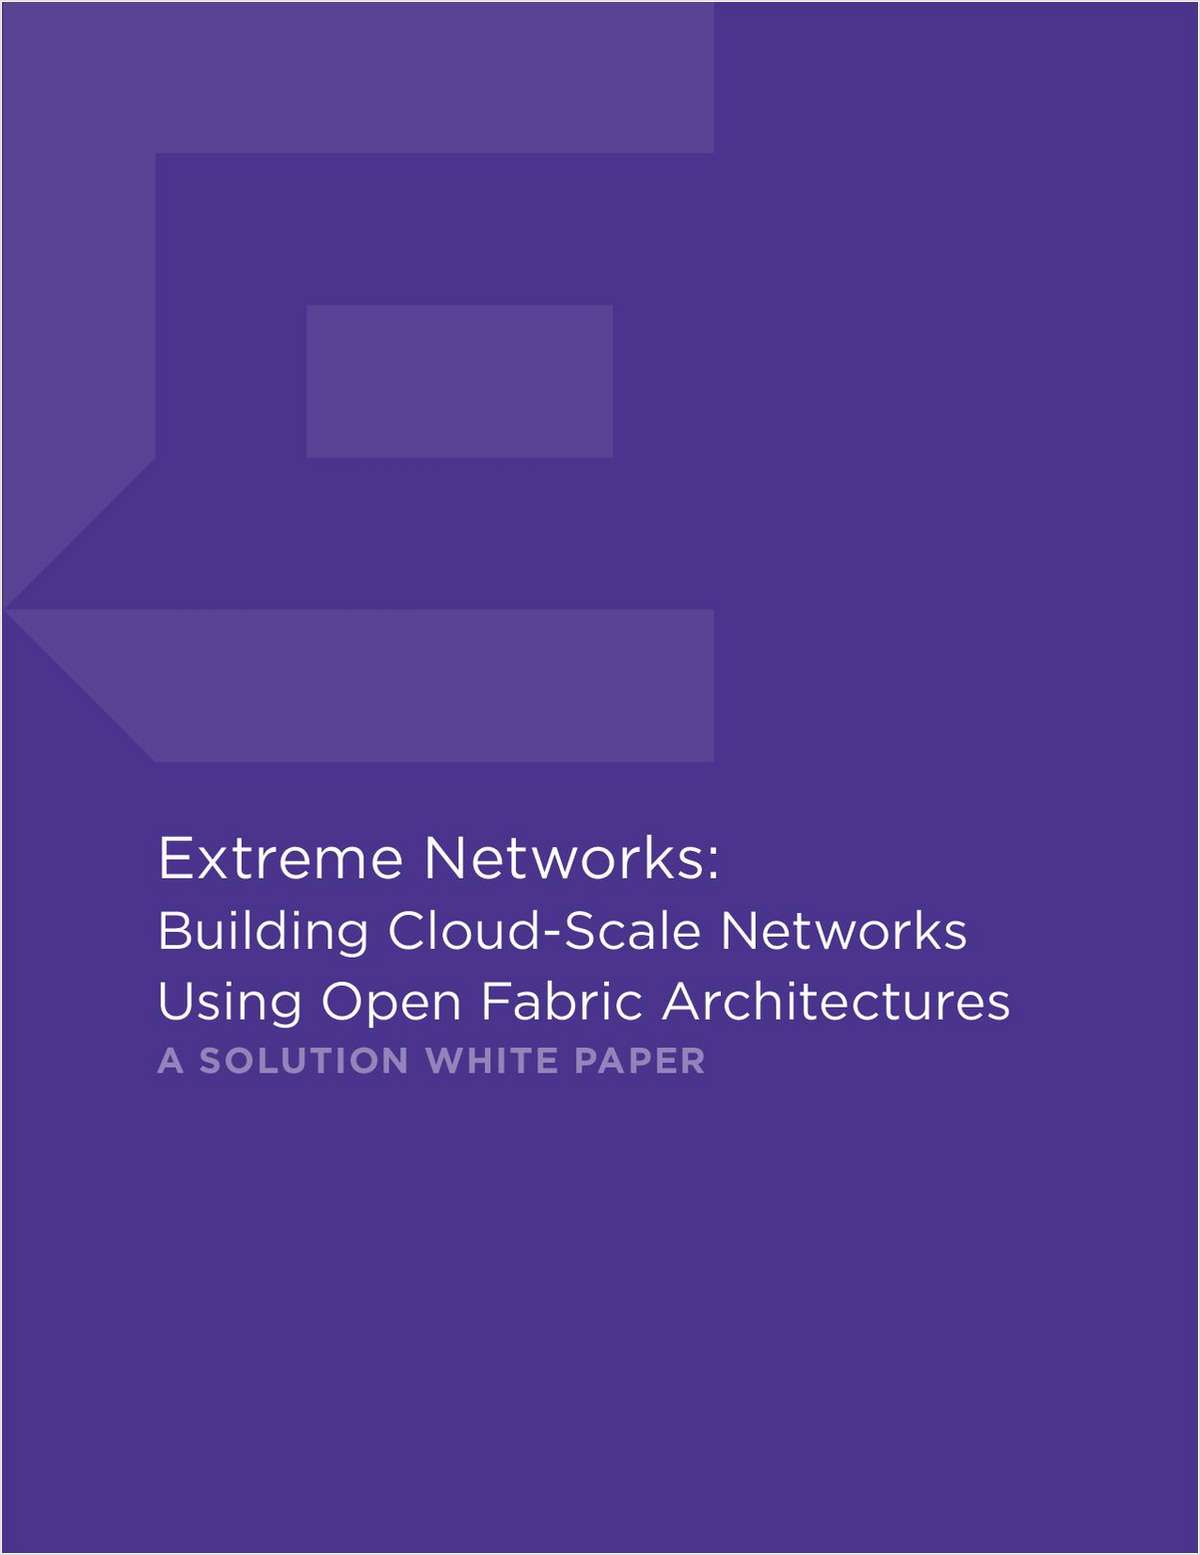 Enabling Cloud-Scale Data Centers